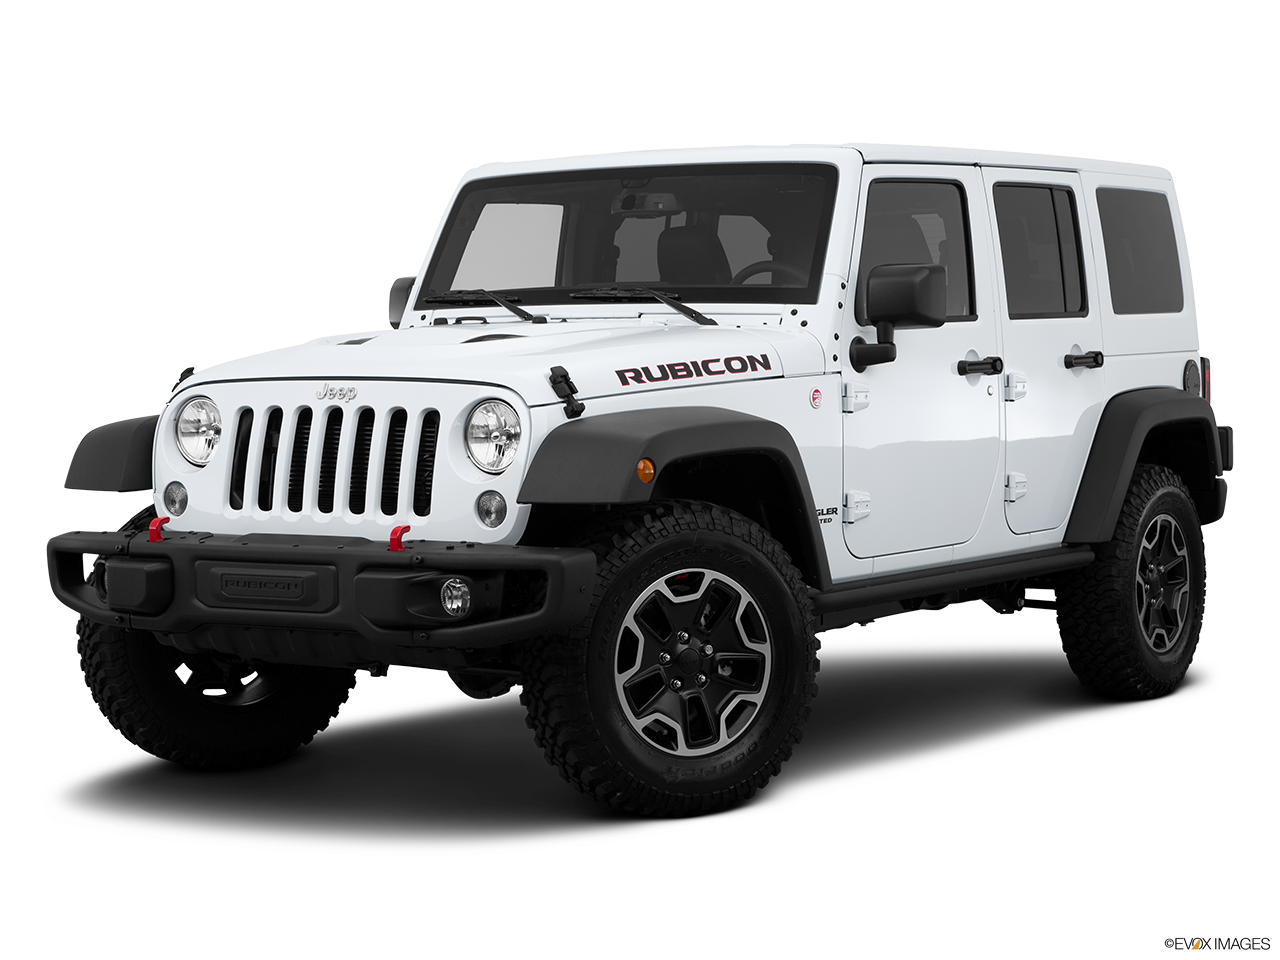 Test Drive A 2015 Jeep Wrangler Unlimited at Huntington Beach Chrysler Dodge Jeep Ram in Huntington Beach